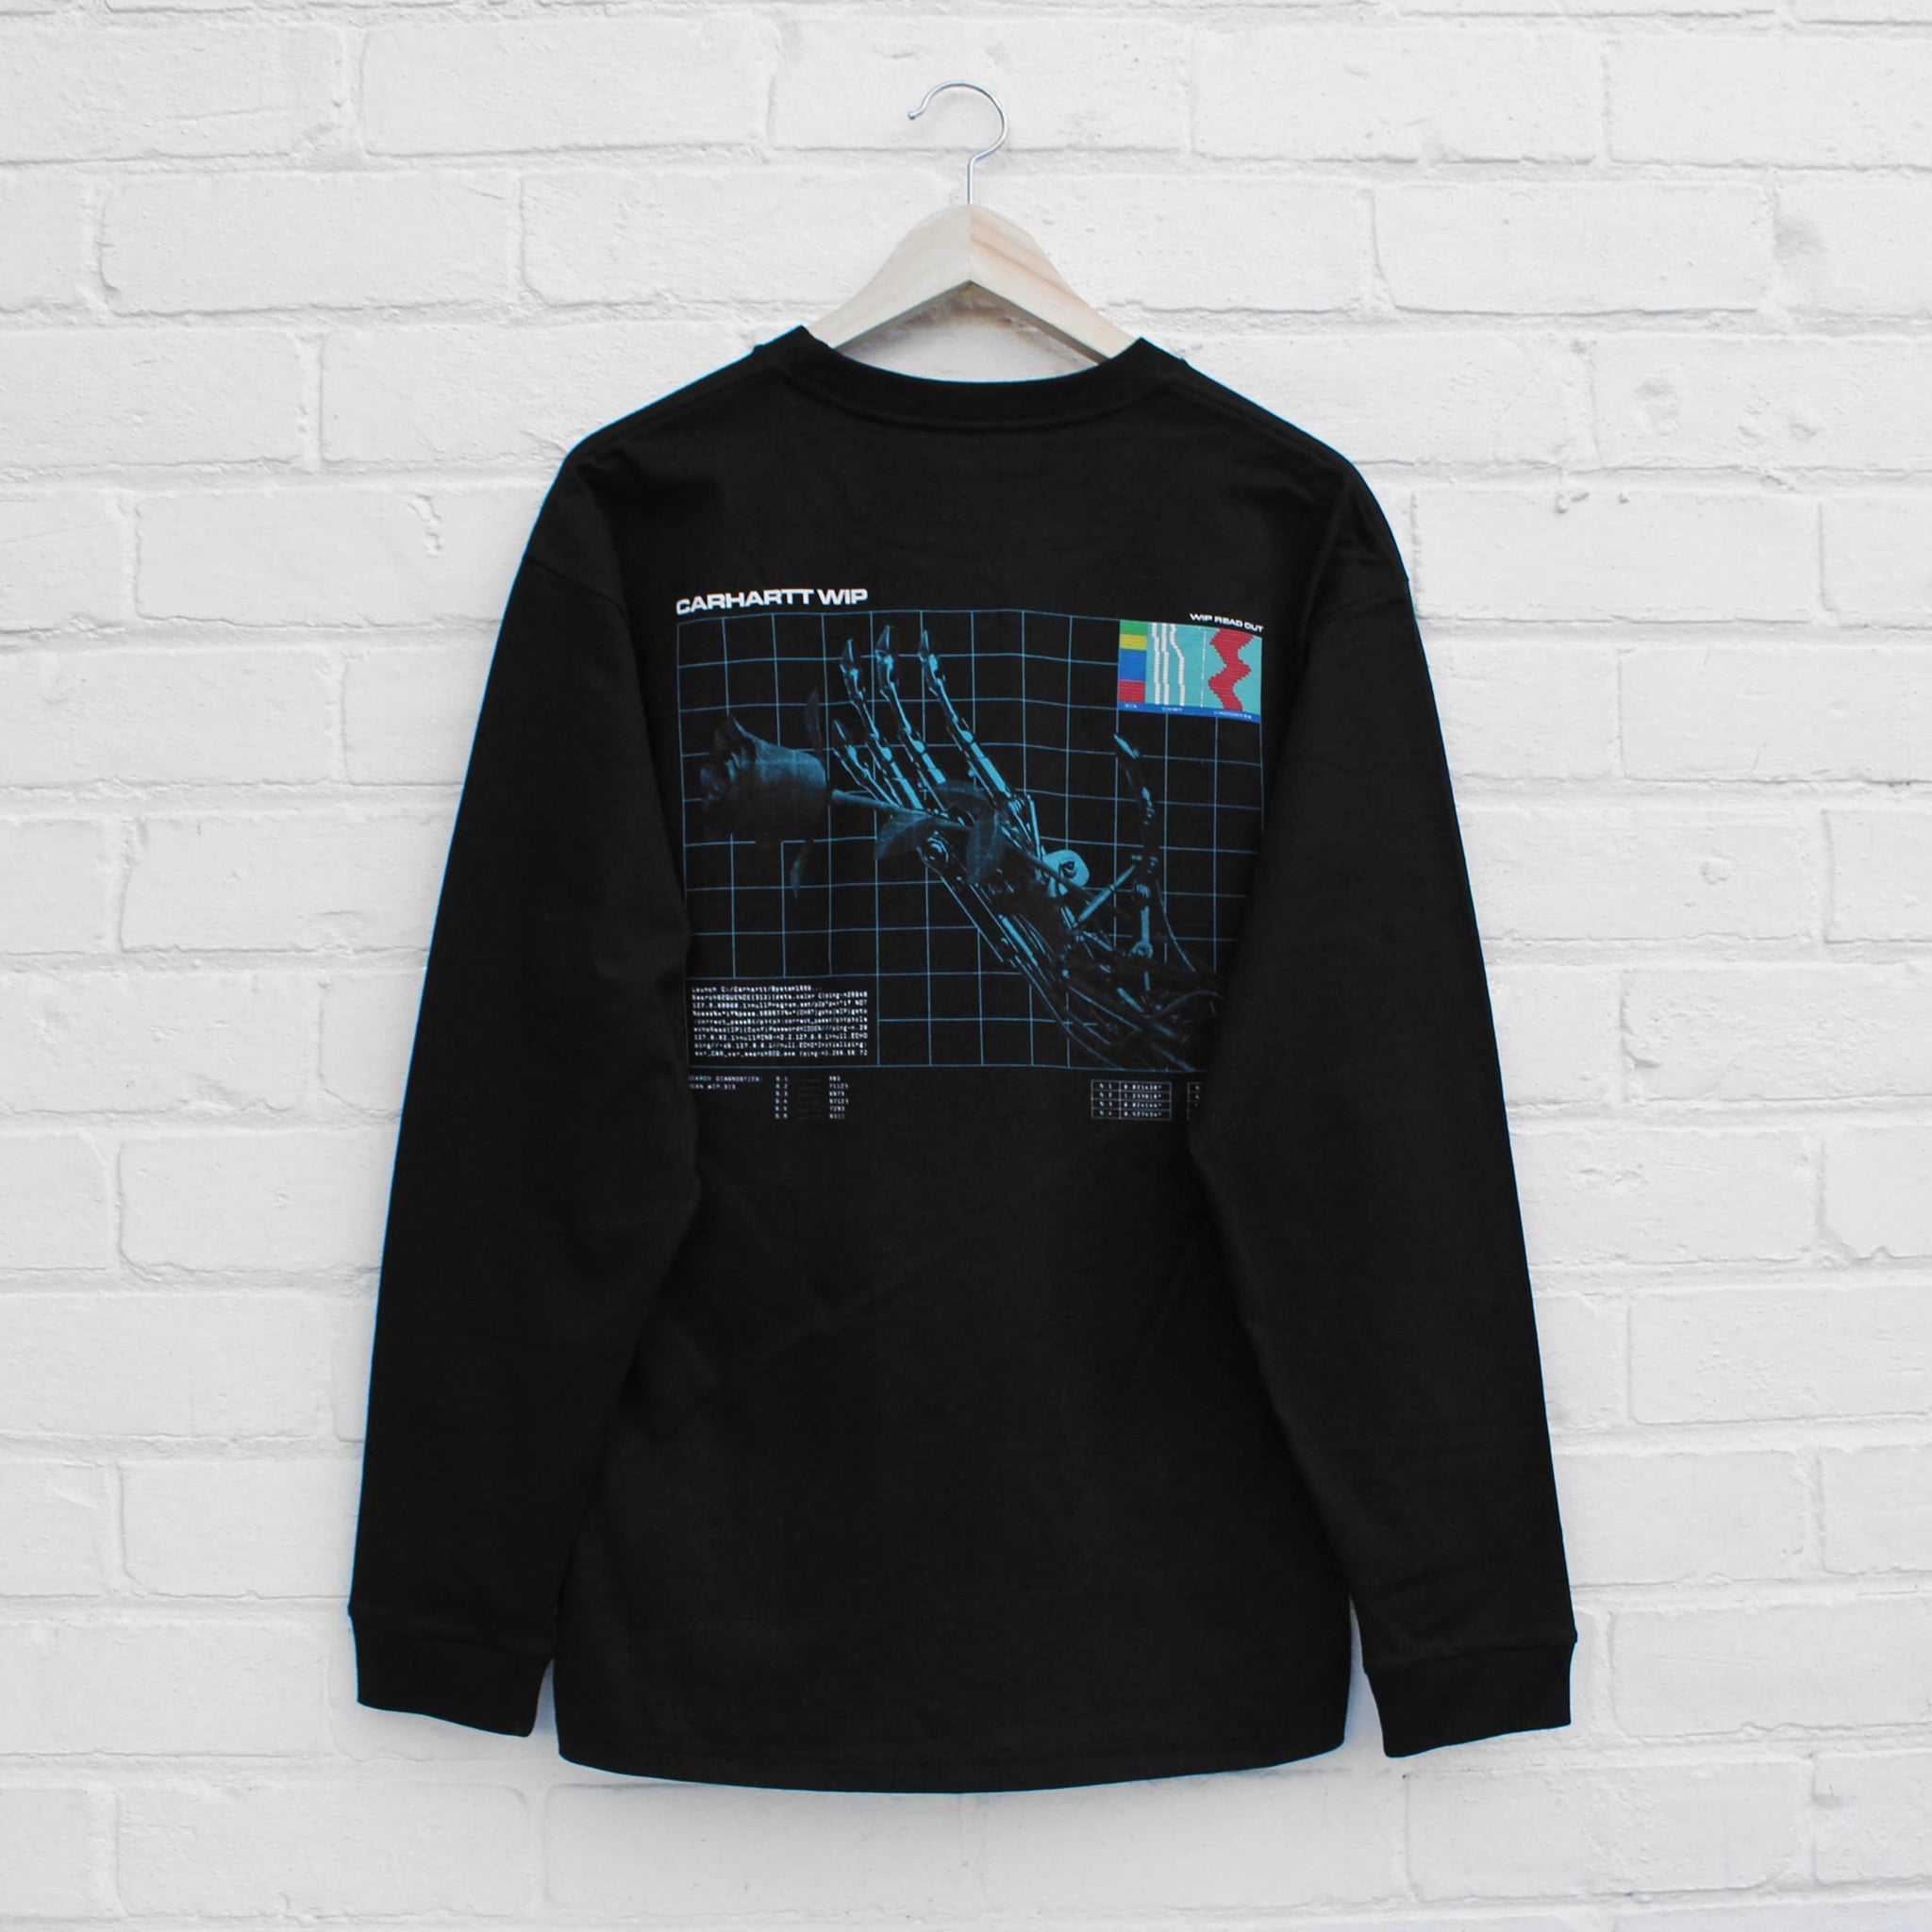 Carhartt WIP Future Romance Long Sleeve T-Shirt  Black